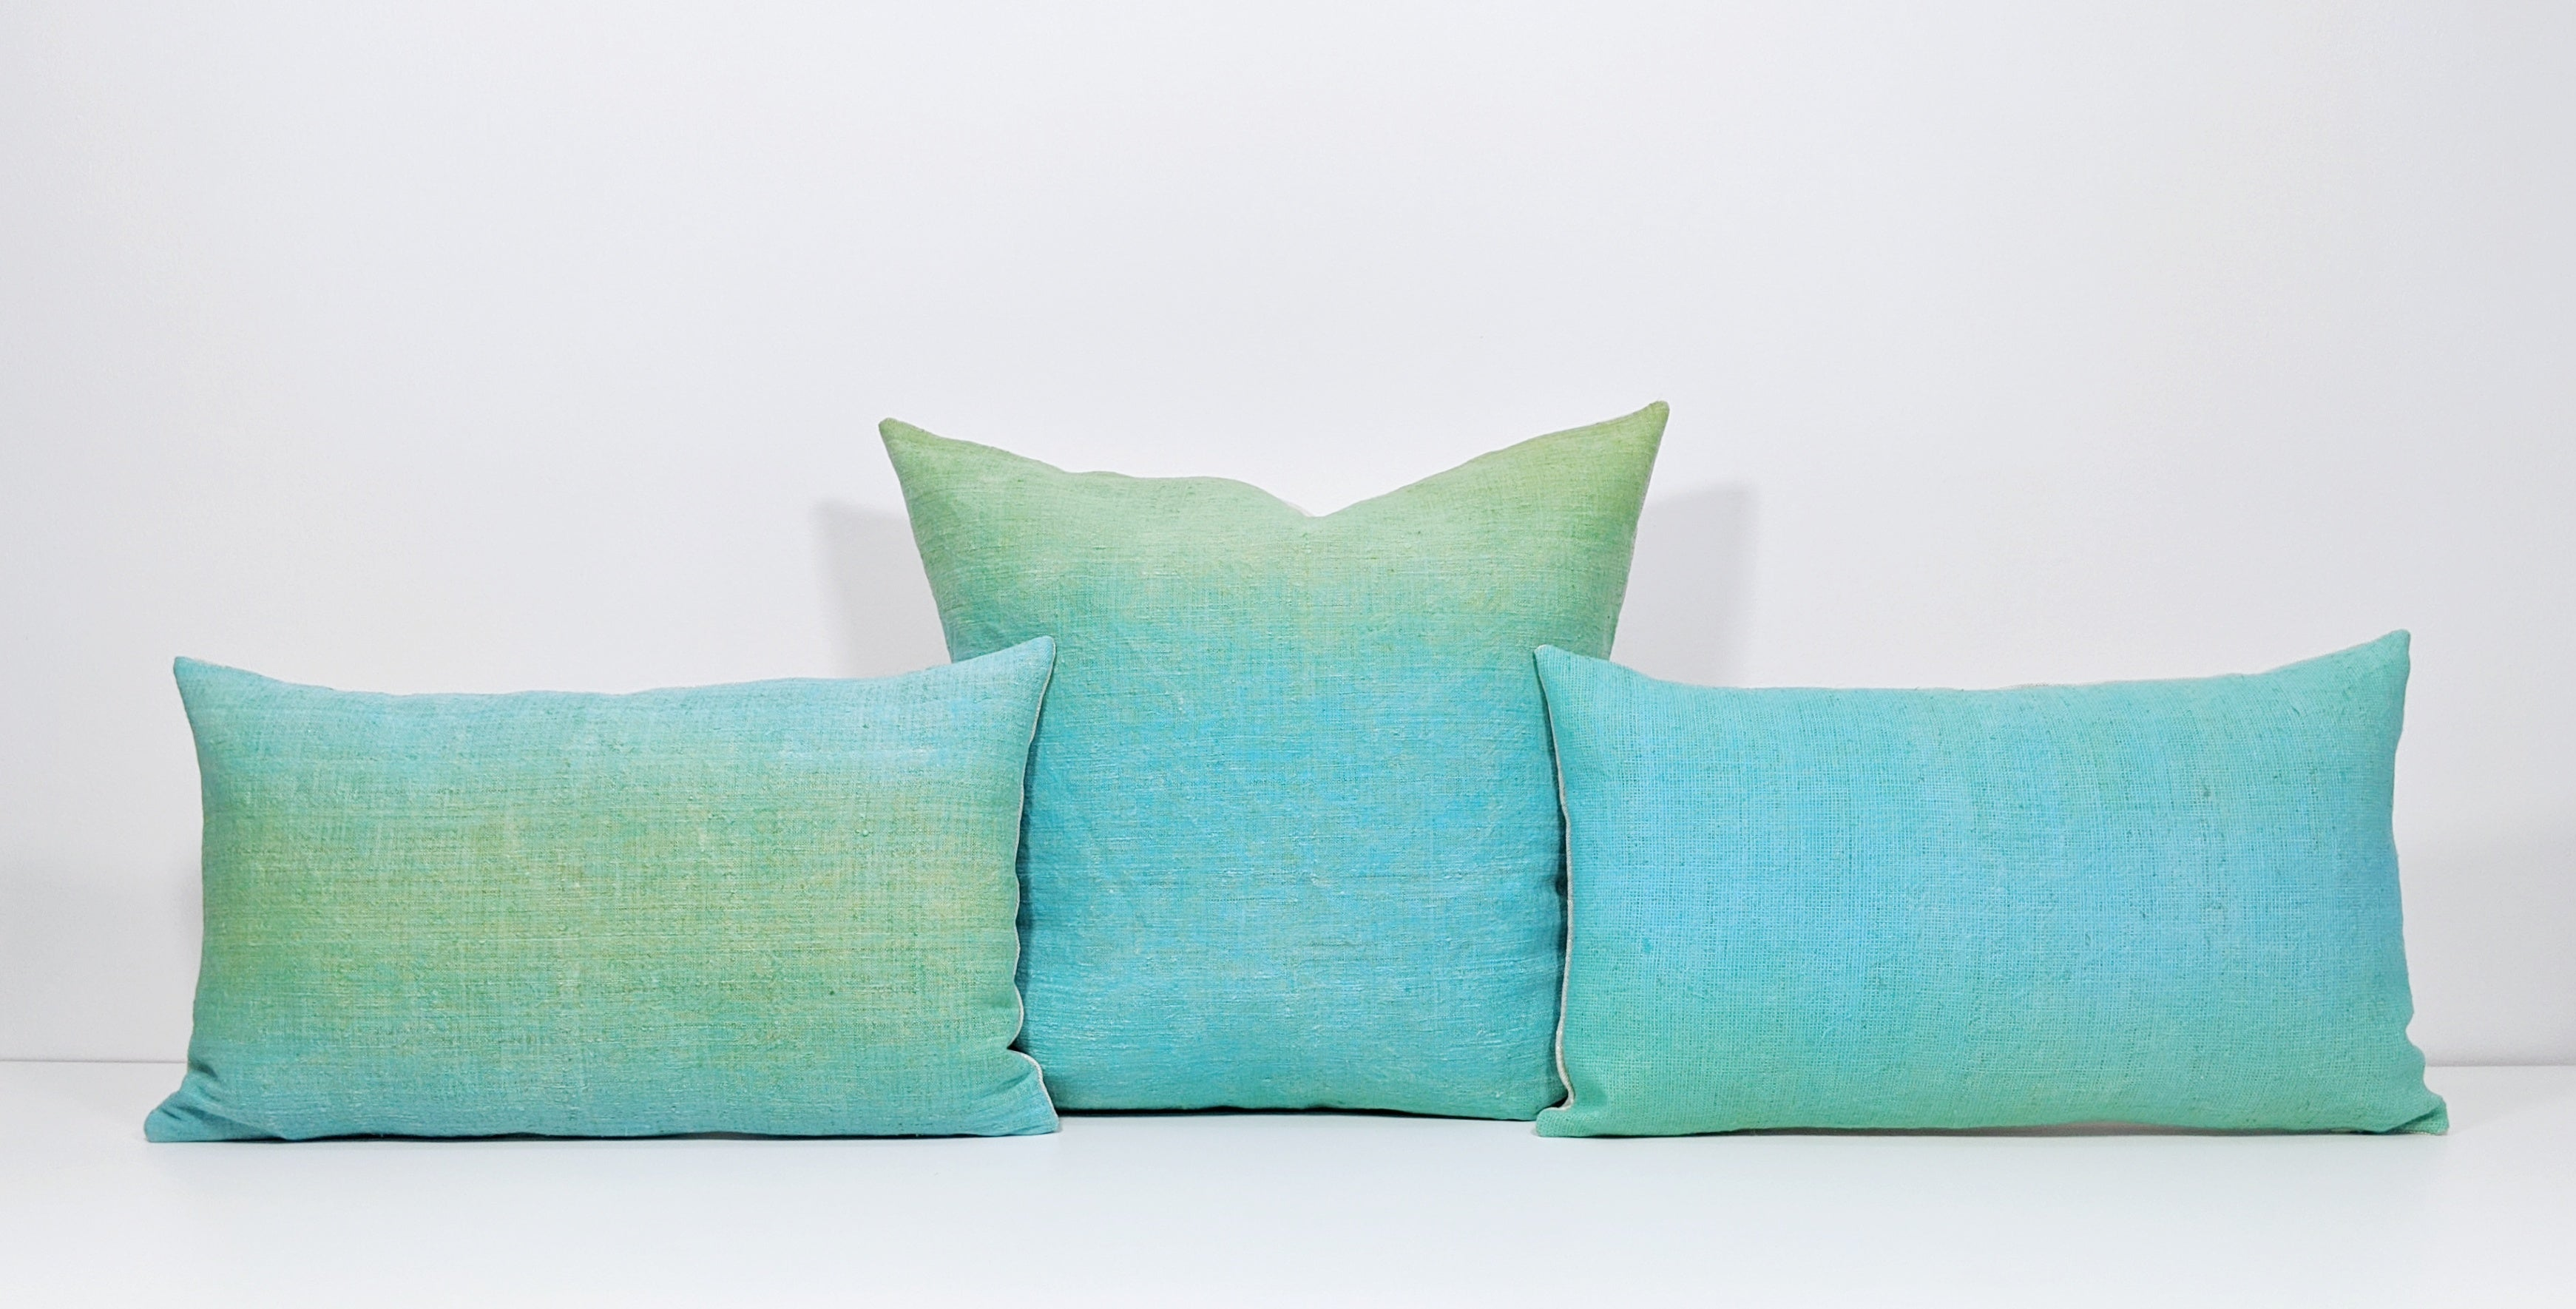 Hand-painted vintage linen pillow neon blue green aqua